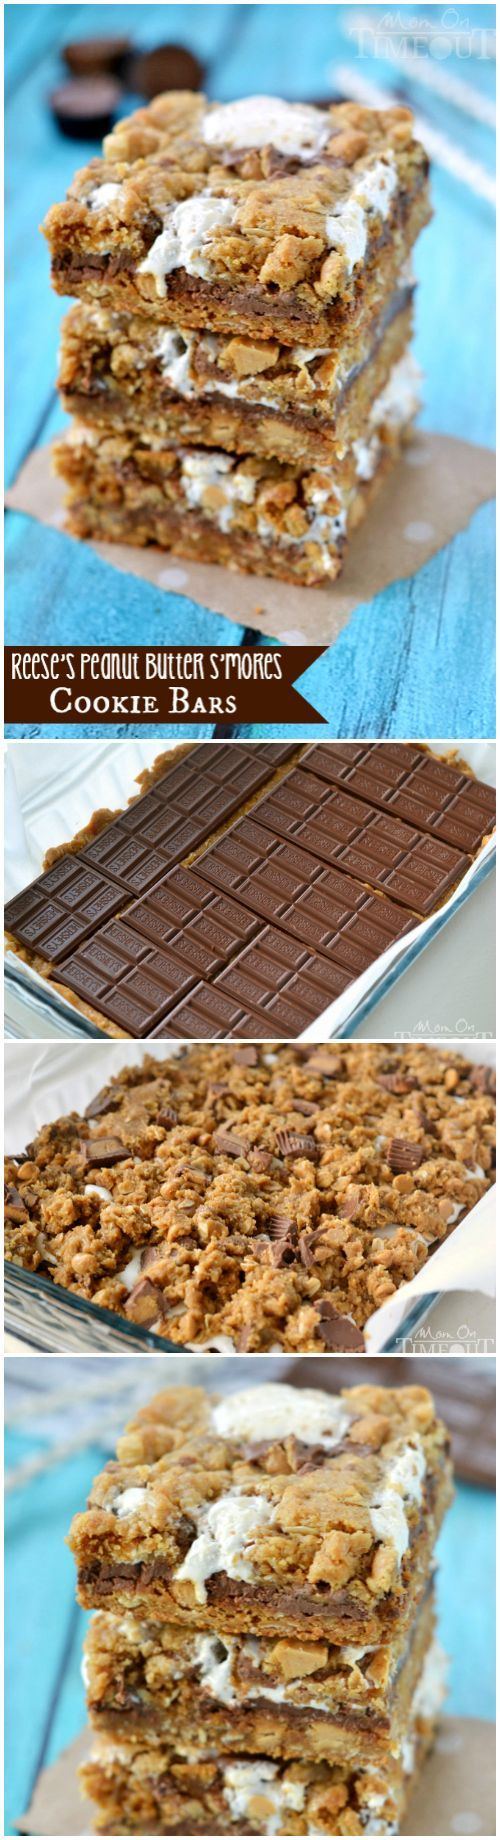 17 best images about bars on pinterest salted caramels for Peanut butter recipes easy dessert